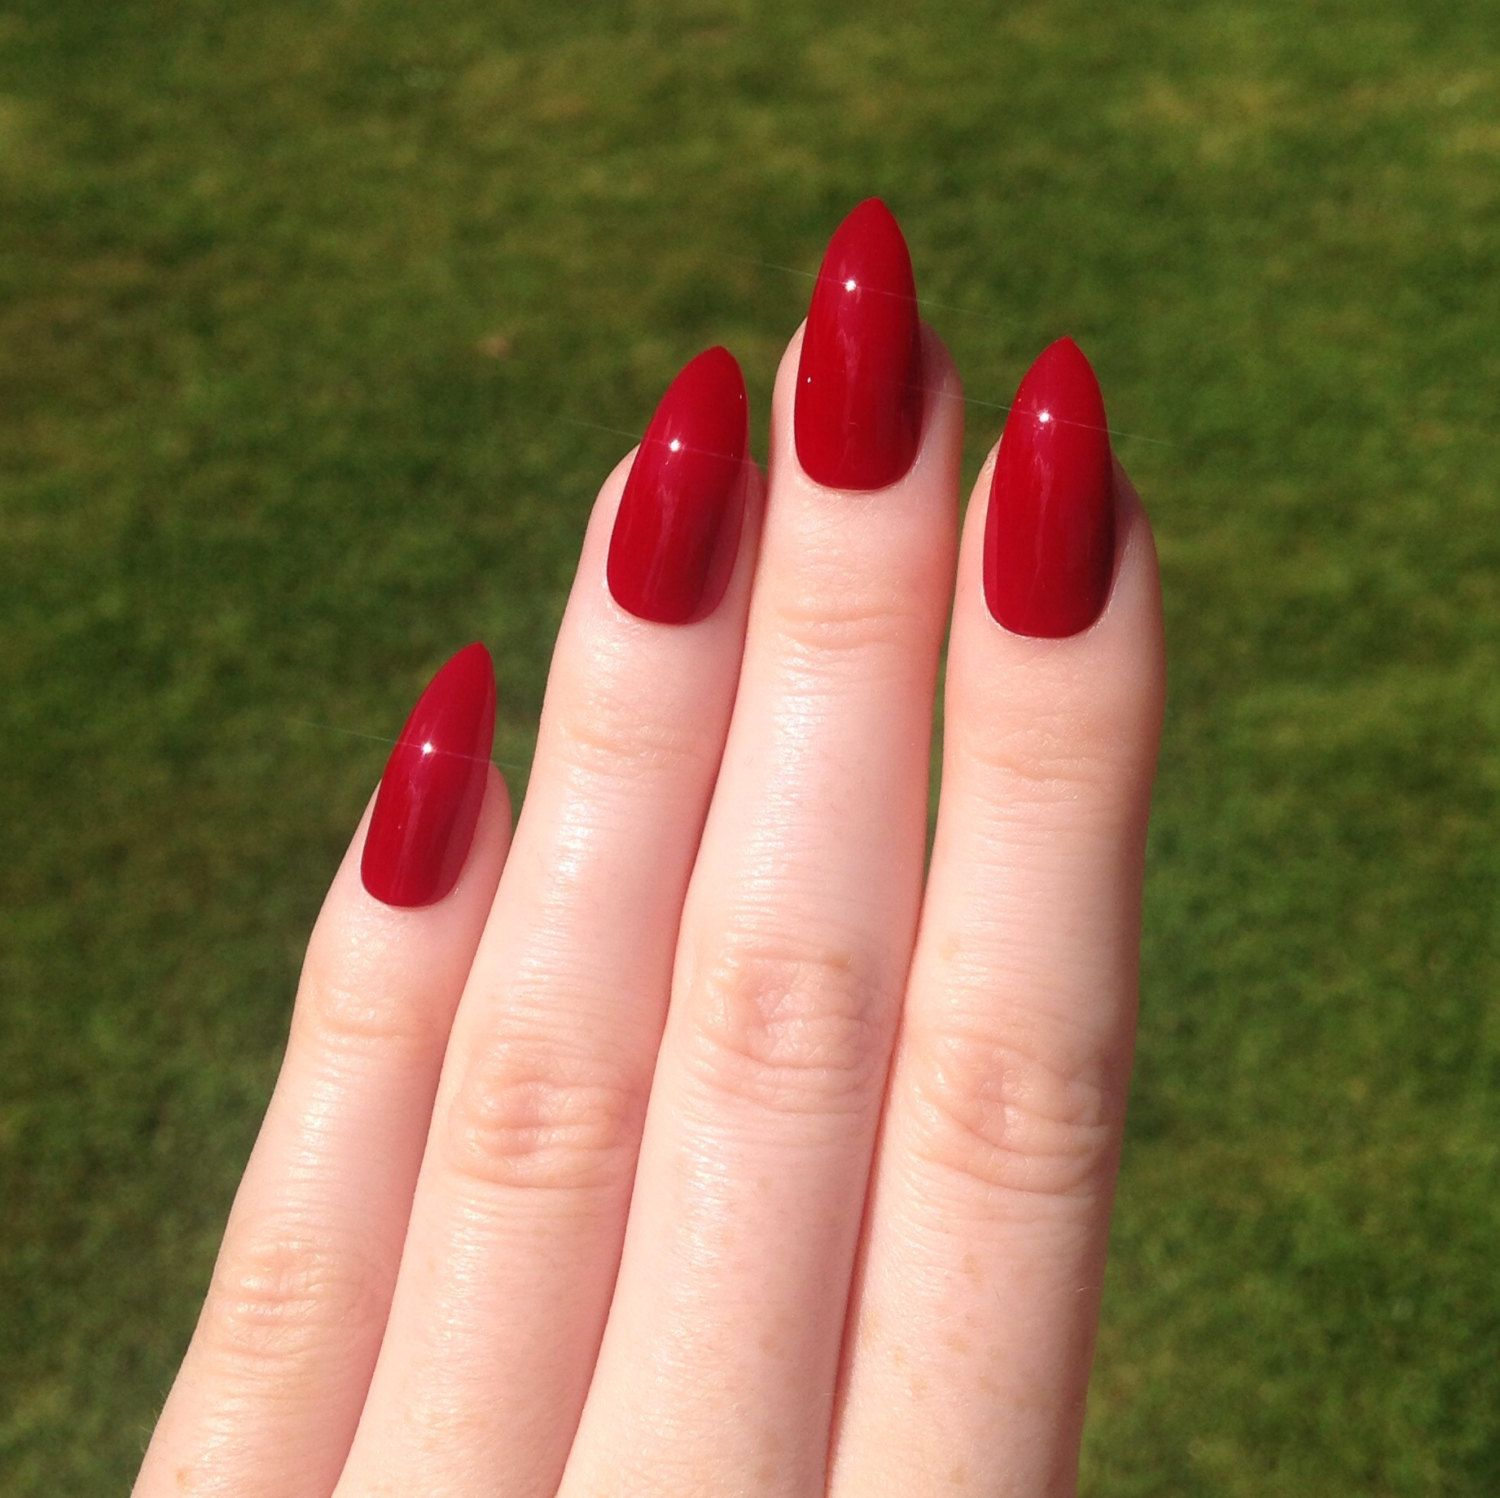 different acrylic nail designs strawberry - Google Search | essence ...